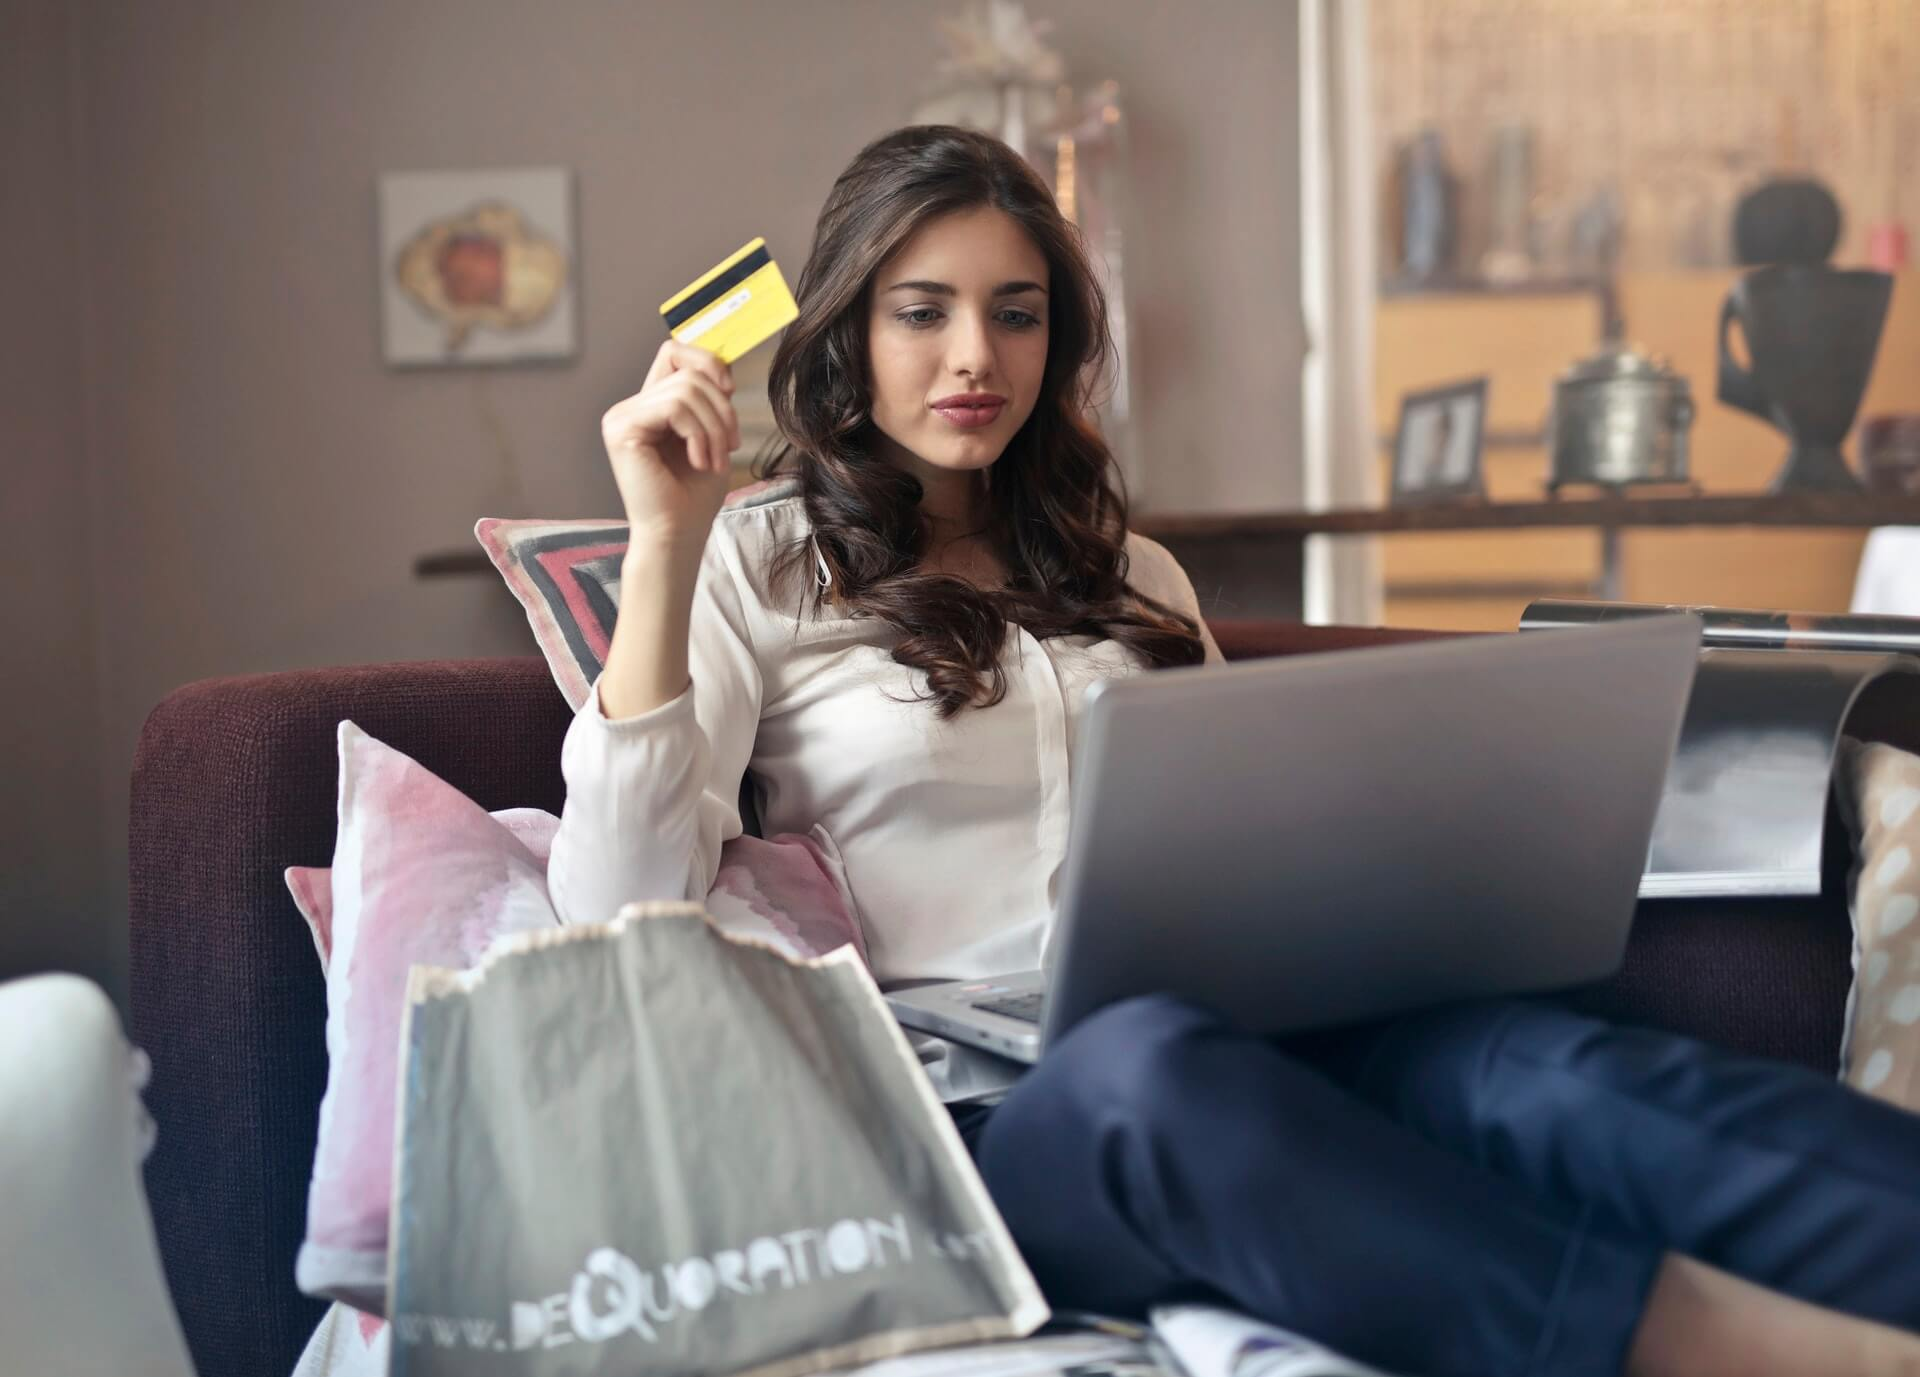 5 Types Of Online Shoppers And Why Sites Fail To Convert Them